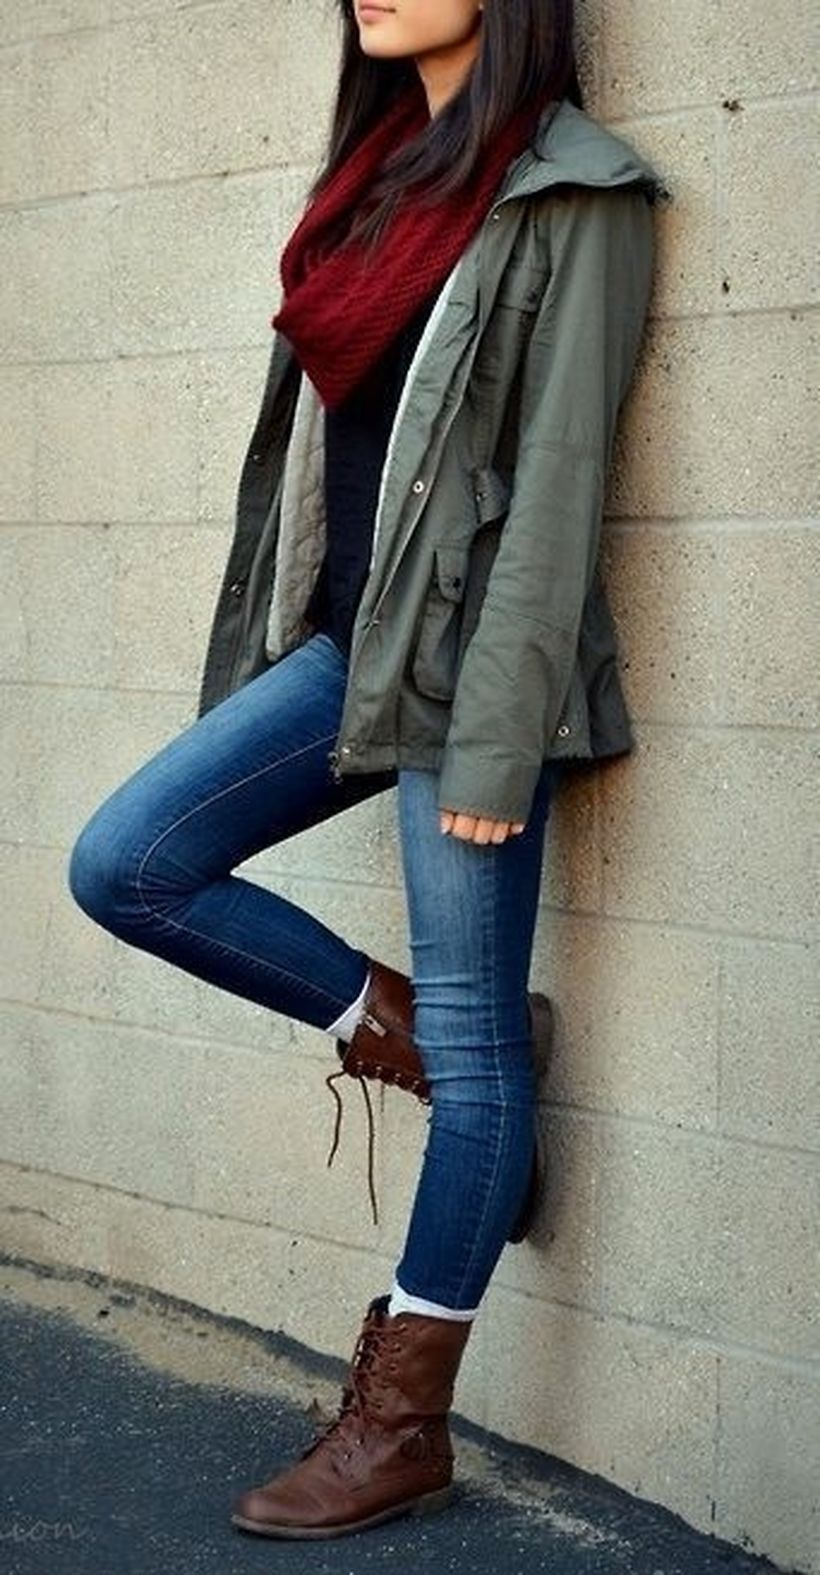 2017 fall fashions trend inspirations for work 35